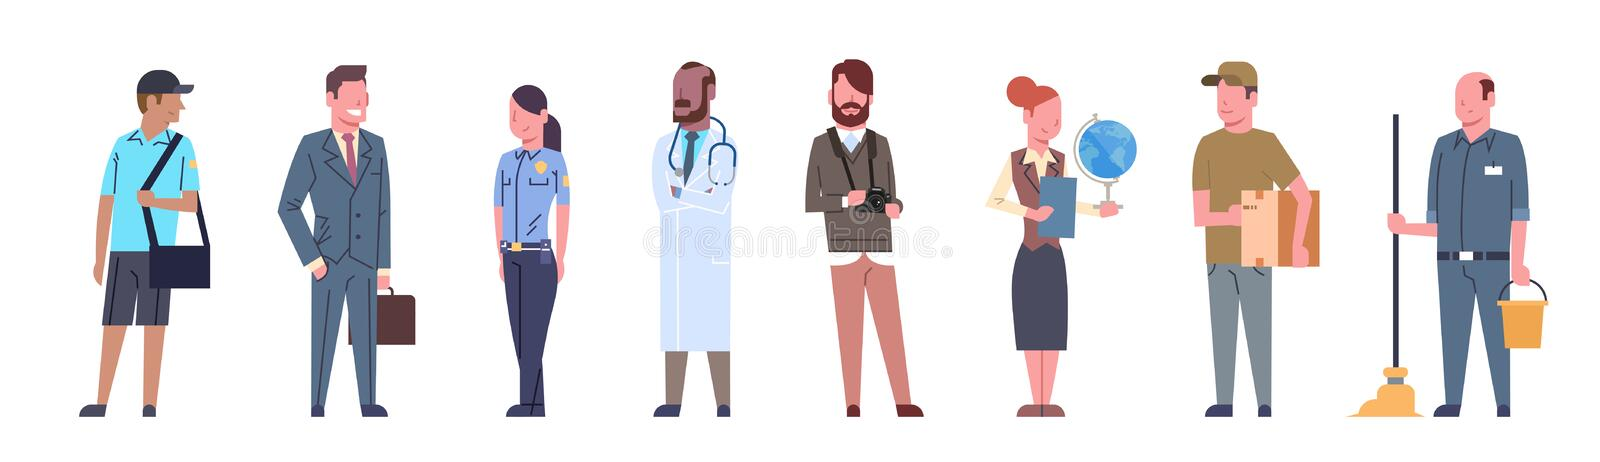 People Group Different Occupation Set Workers Profession Collection Stock Vector - Illustration of girl, design: 96982757